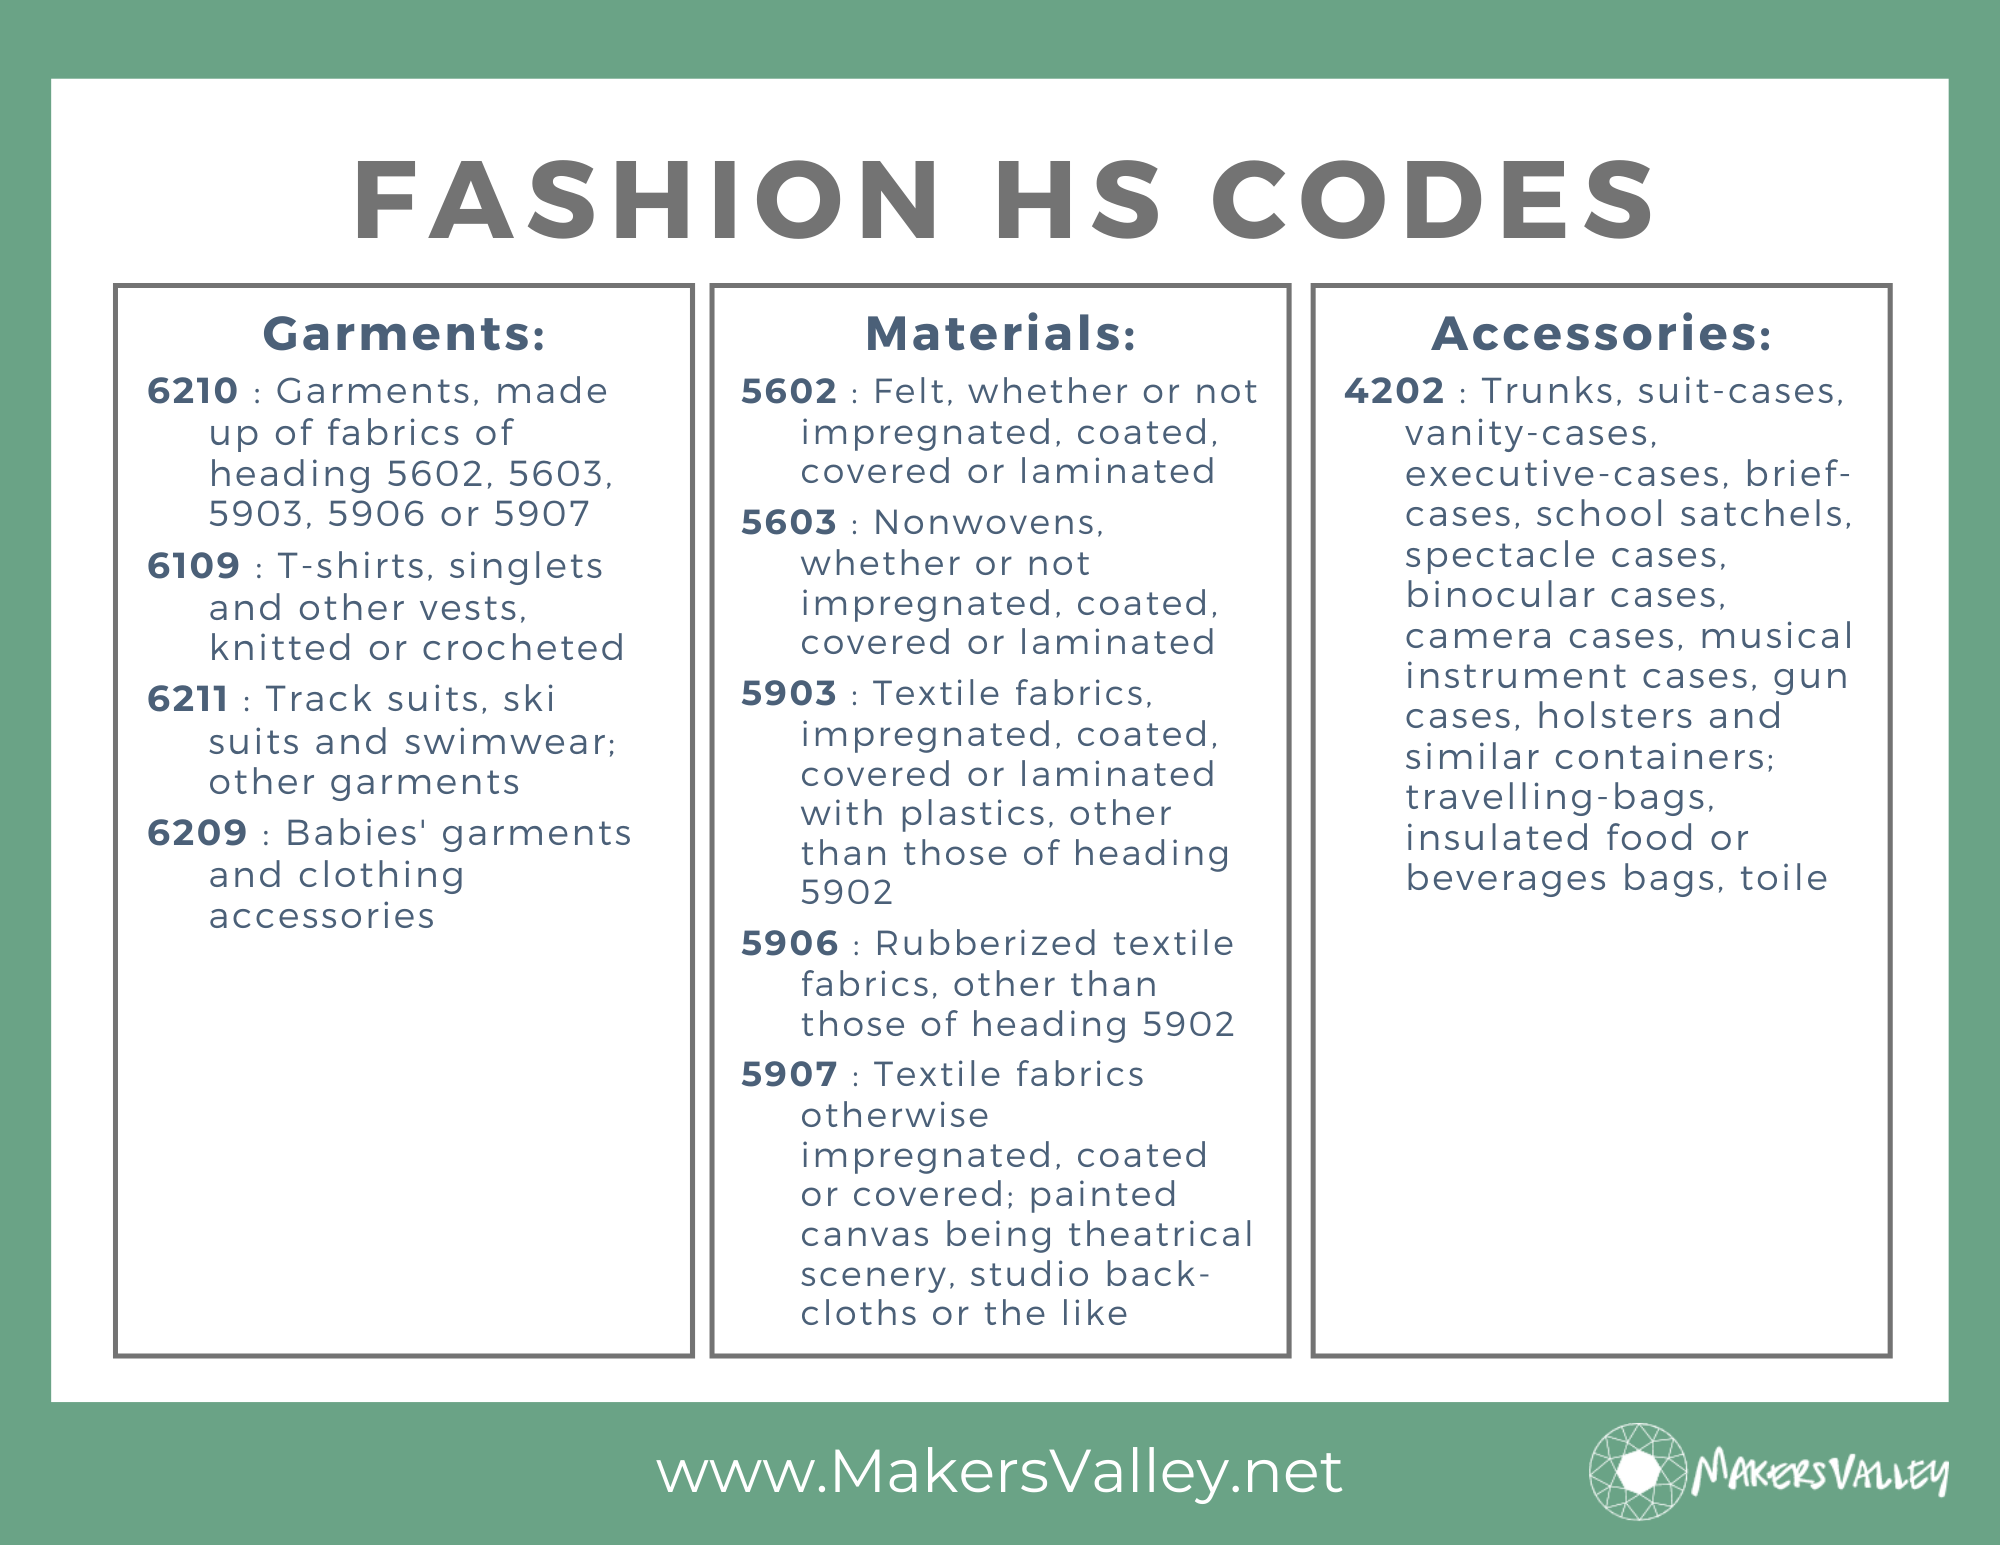 Fashion HS Codes   MakersValley